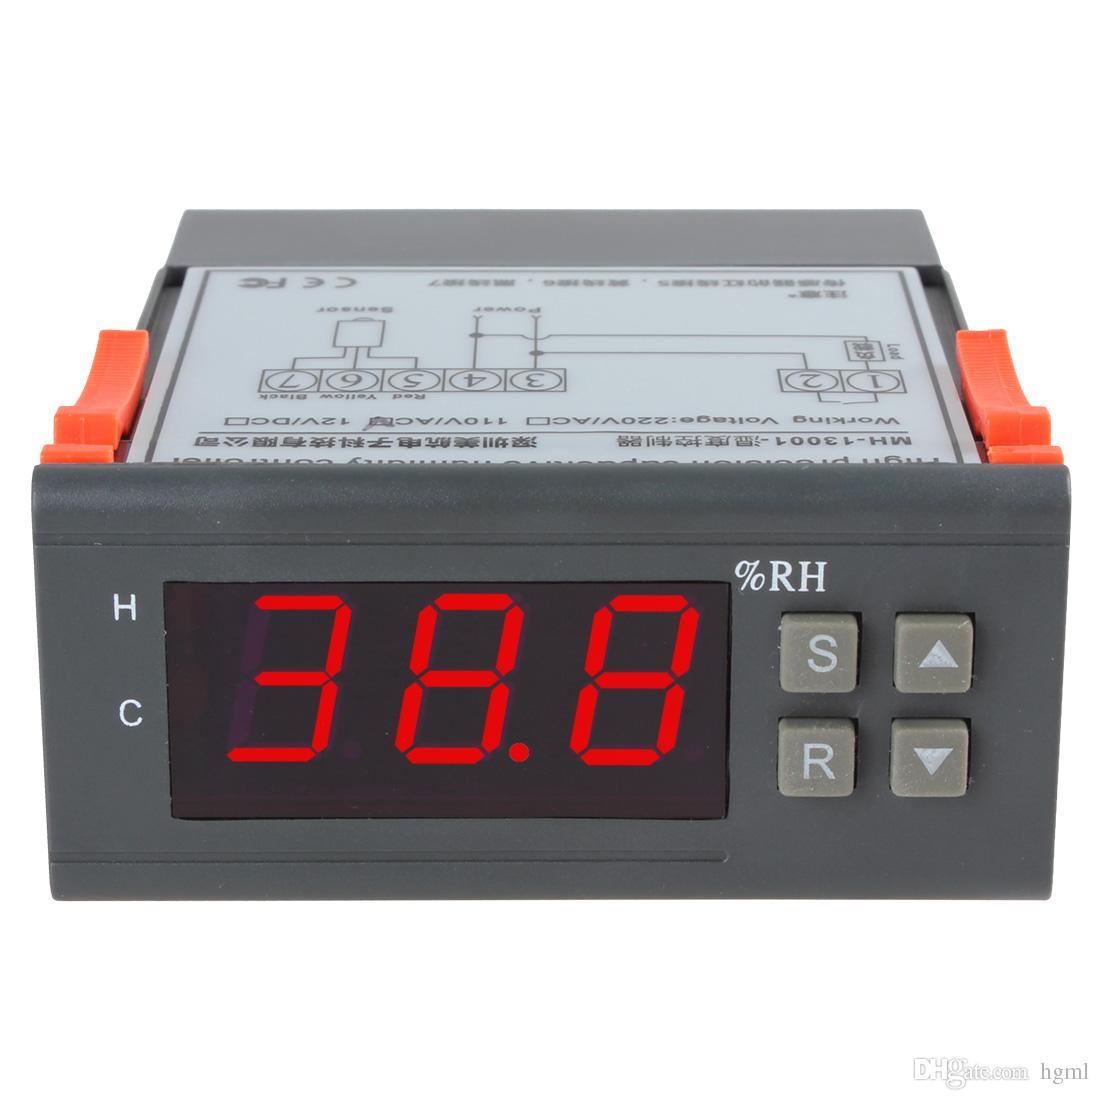 AC 110V Digital LCD Air Humidity Controller Measuring Range 1% ~ 99% with Sensor INS_121